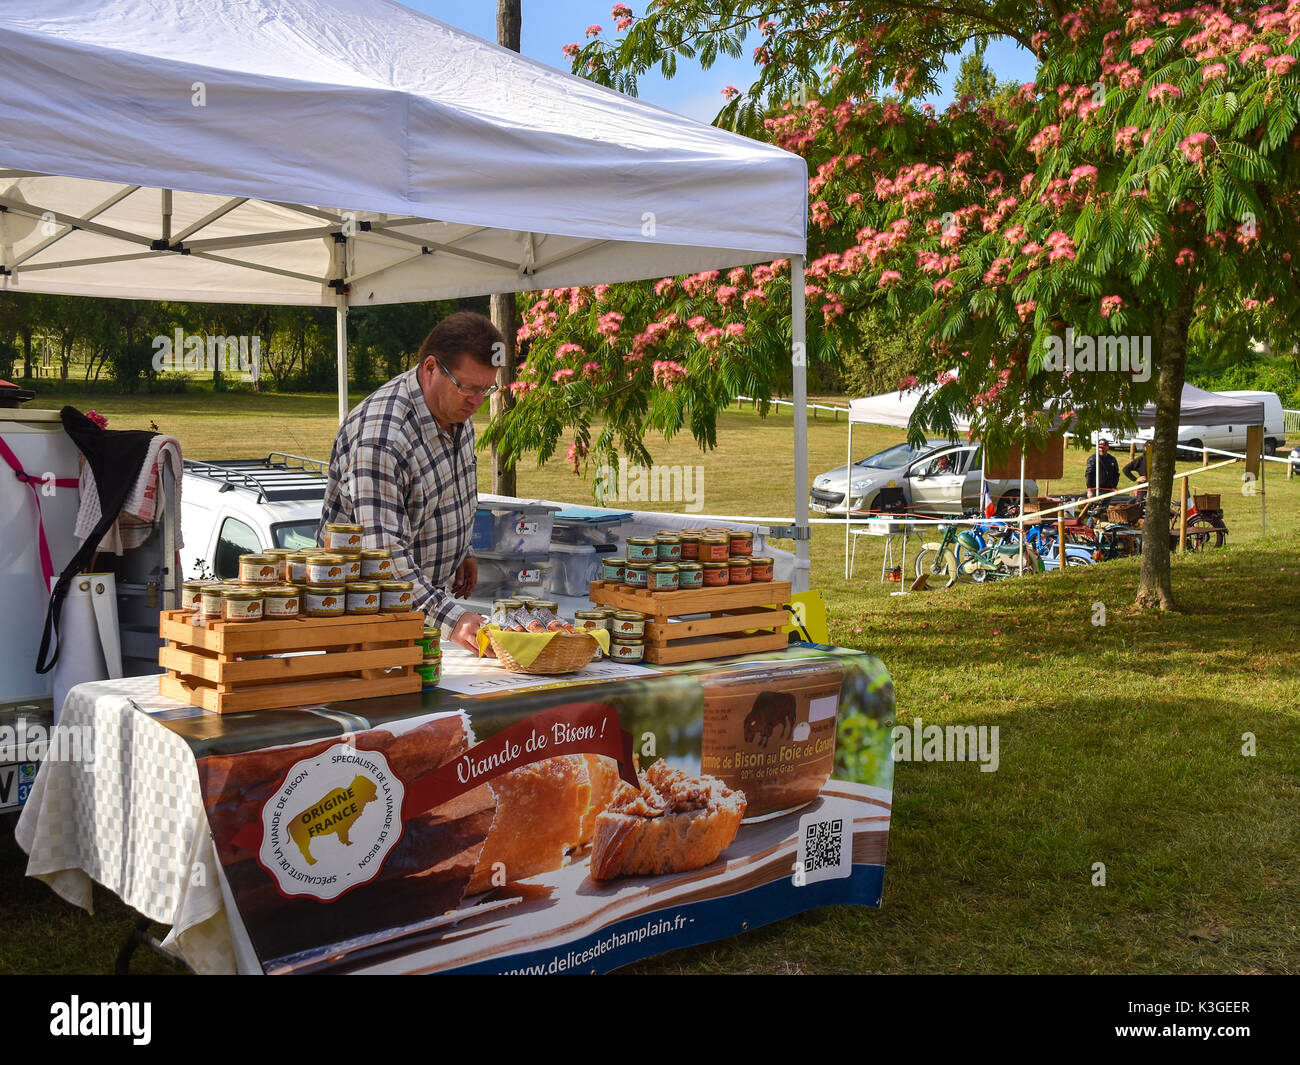 Bison meat seller at country fair, Bossay-sur-Claise, France. - Stock Image